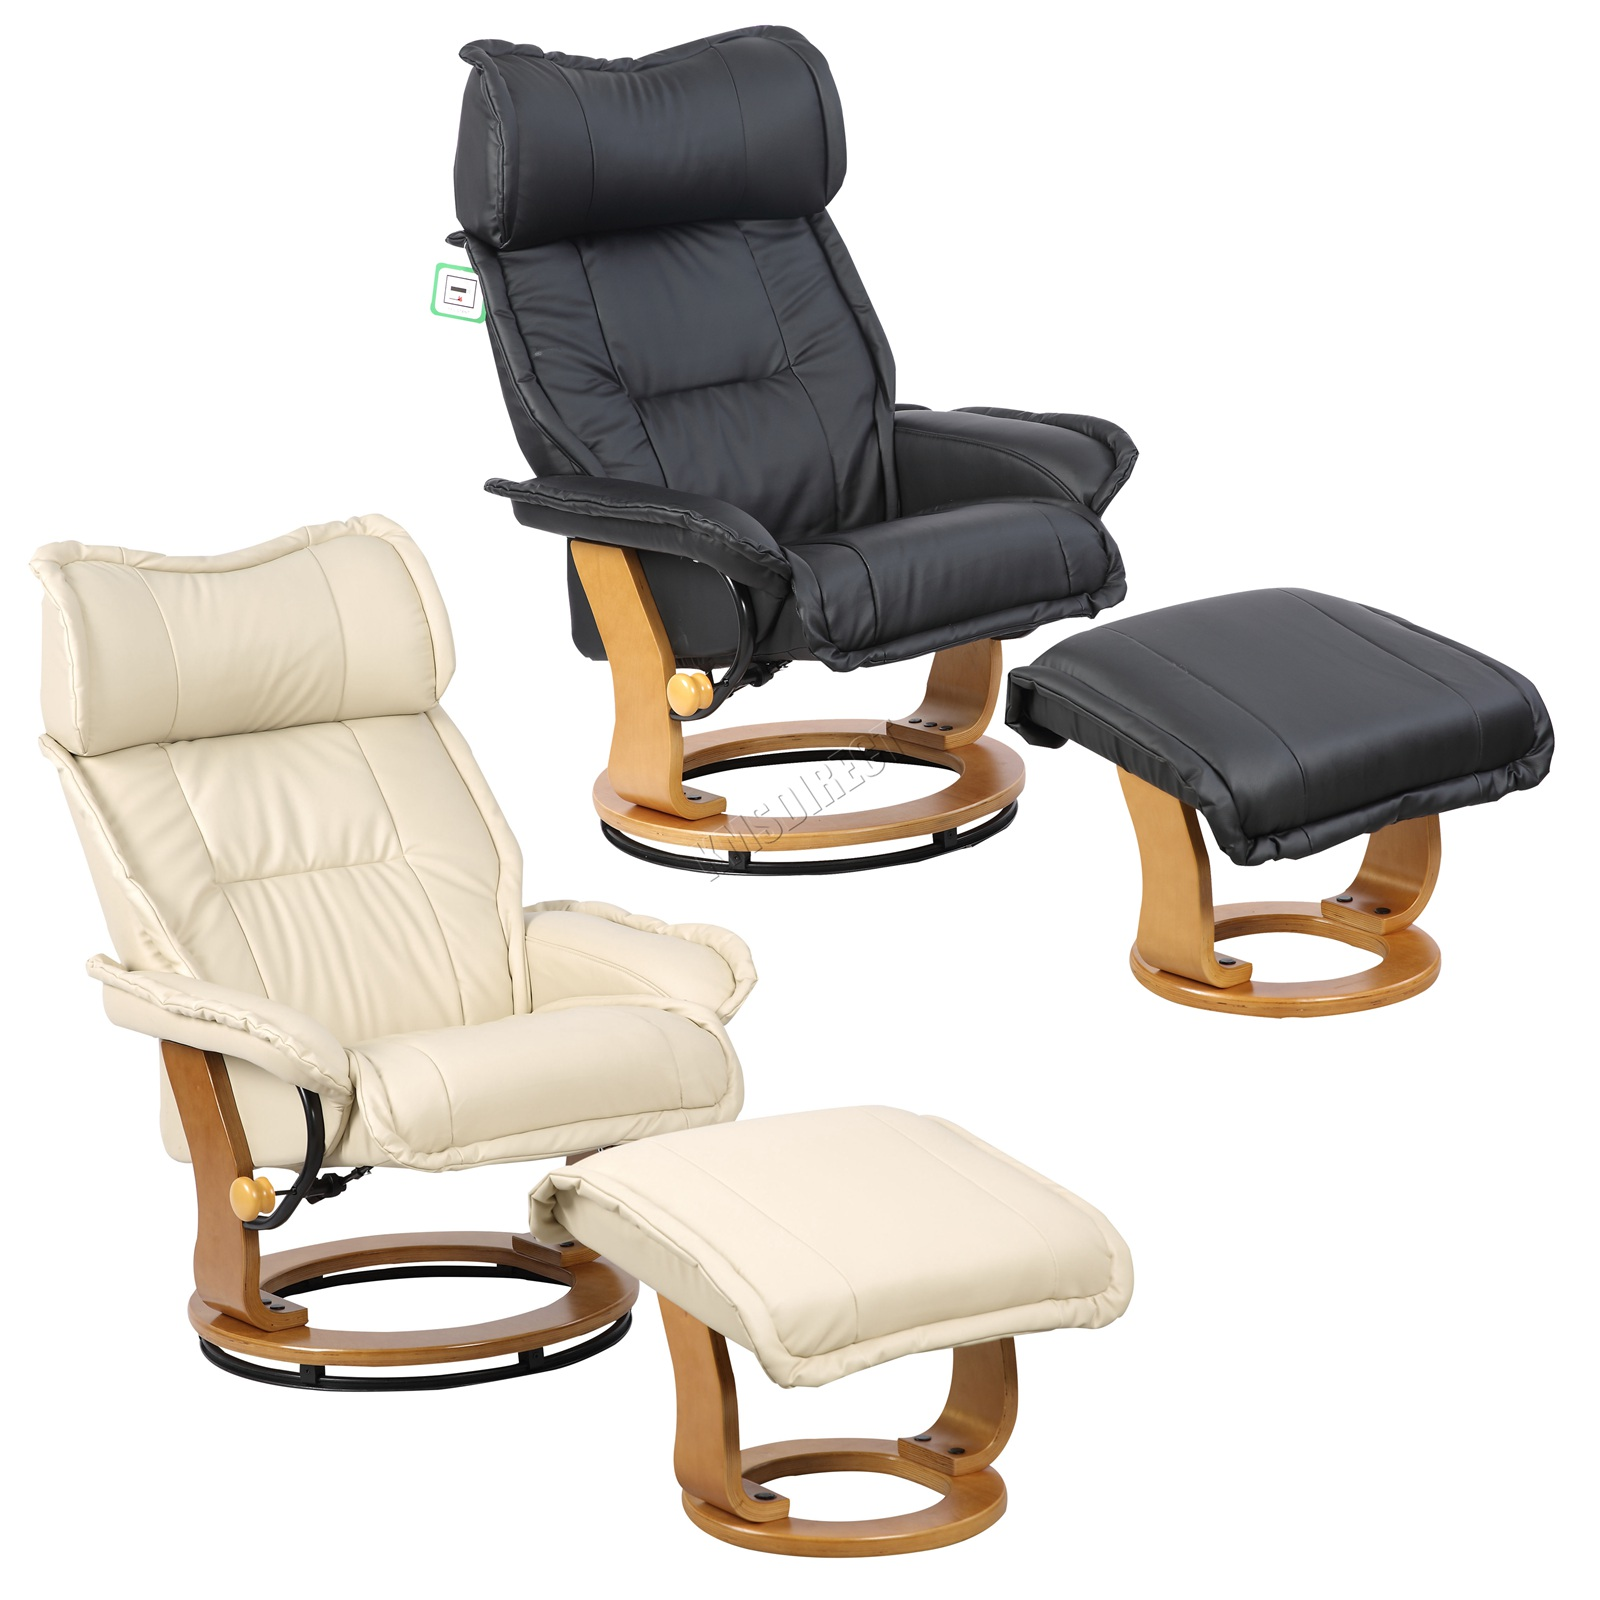 Details About Westwood Swivel Recliner Chair Pu Armchair With Foot Stool Ottoman Home Rcs06